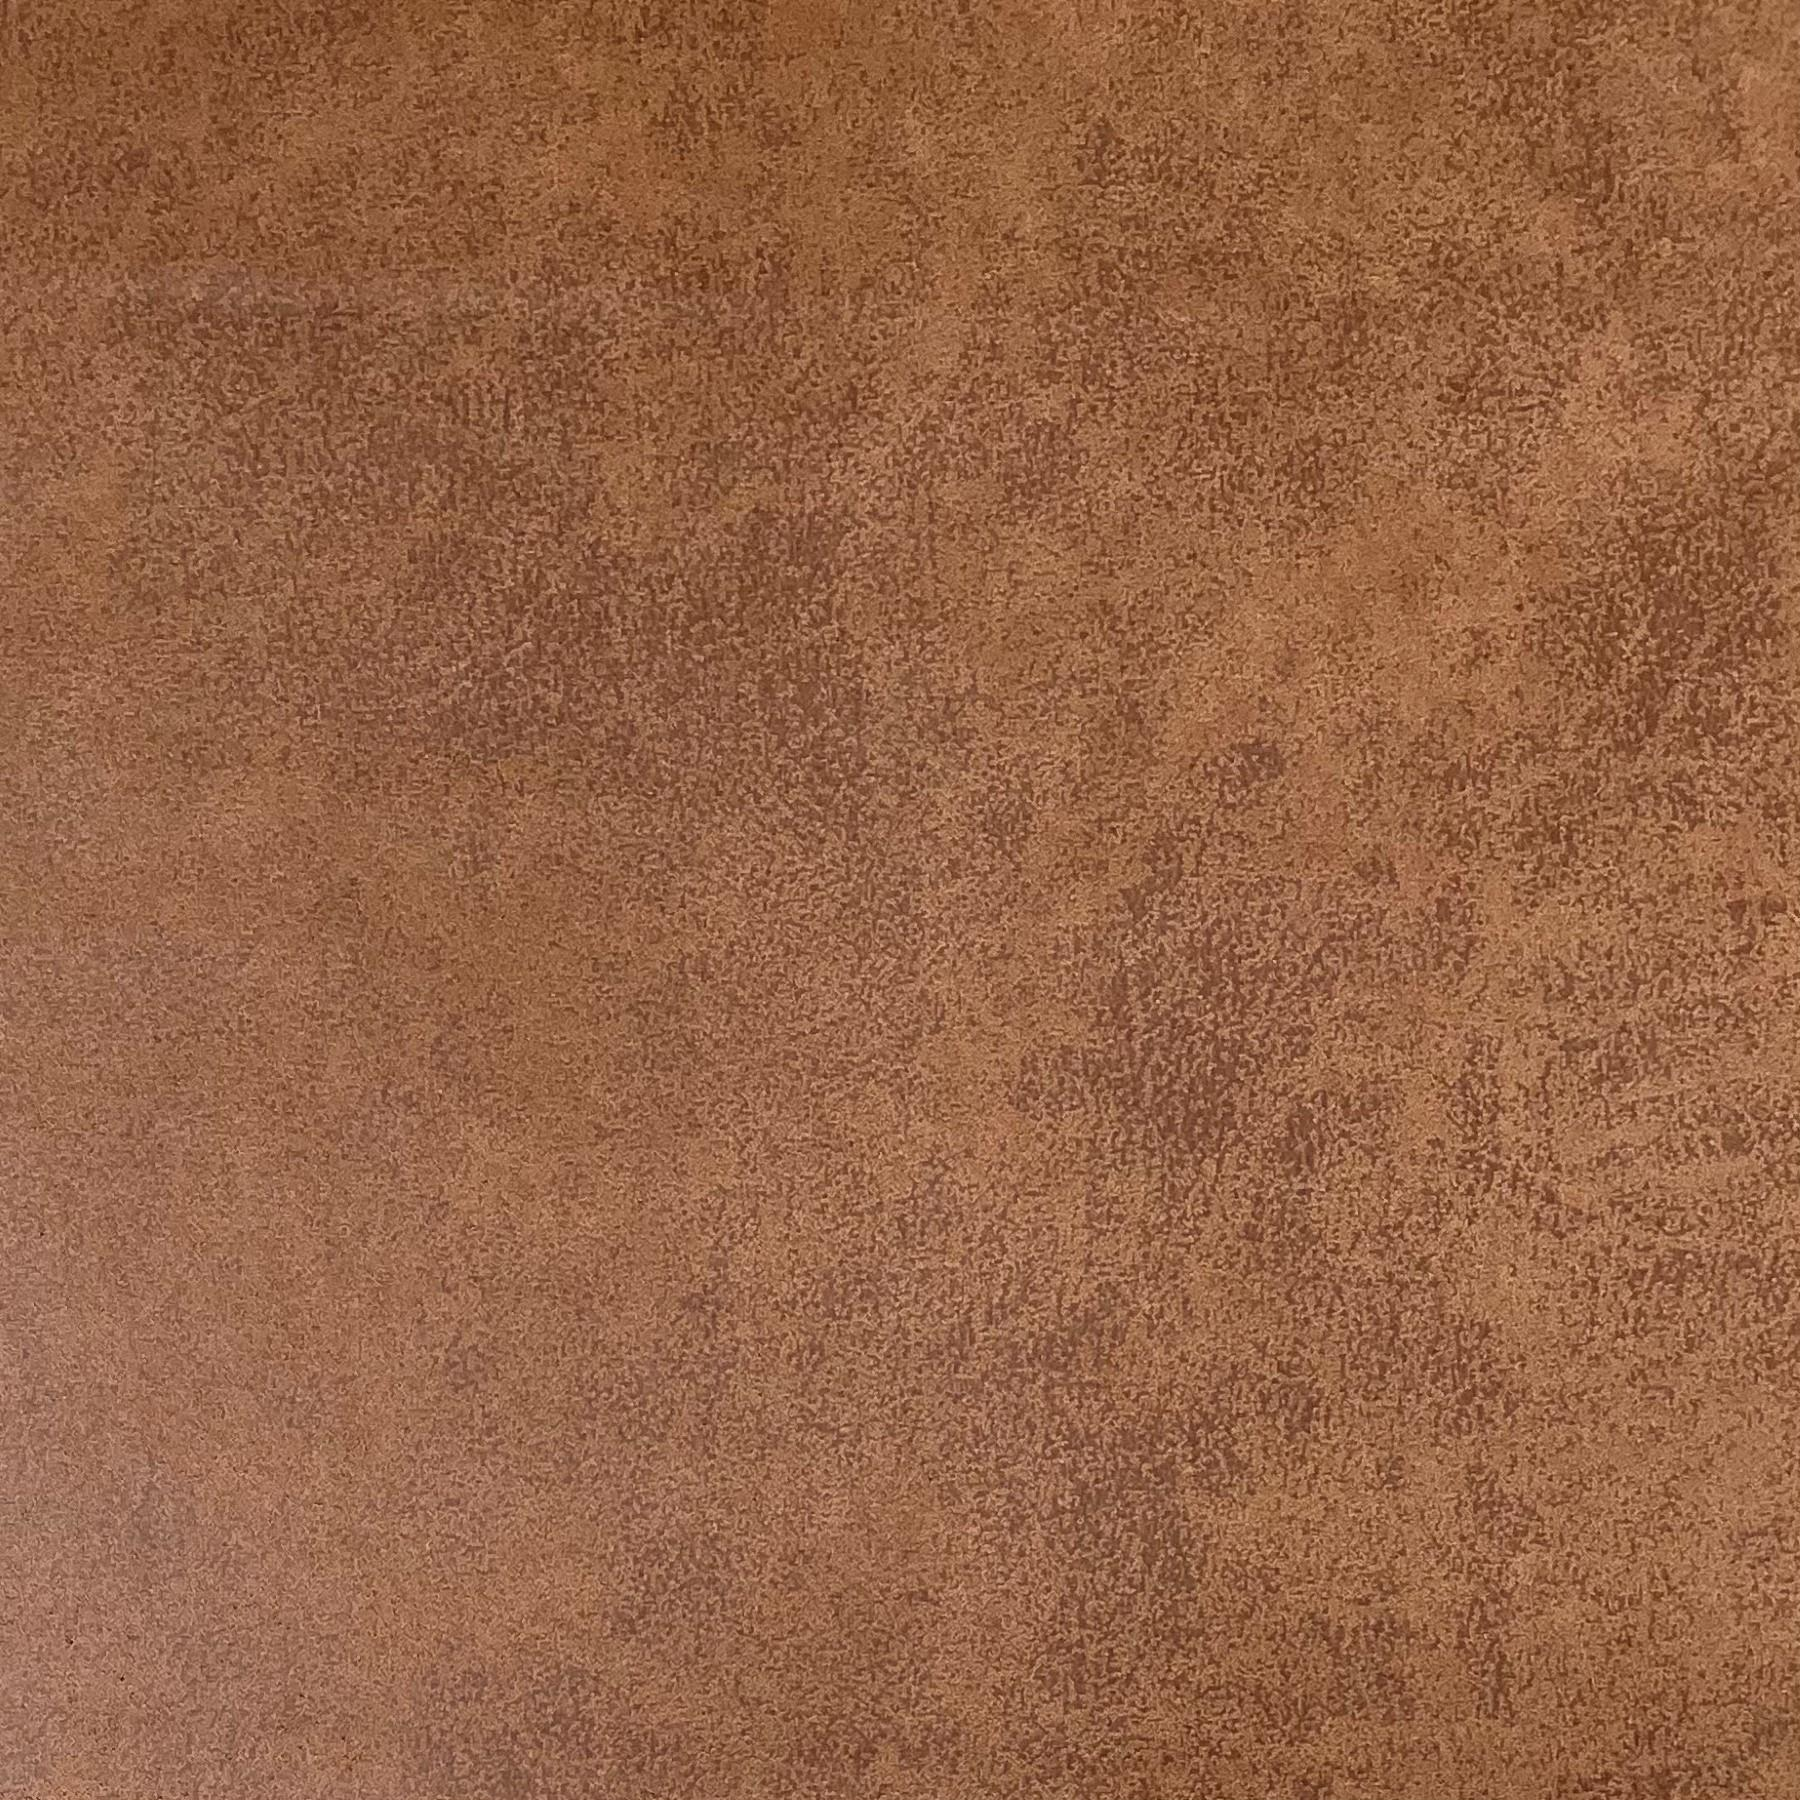 thumbnail 45 - AGED BROWN DISTRESSED ANTIQUED SUEDE FAUX LEATHER LEATHERETTE UPHOLSTERY FABRIC